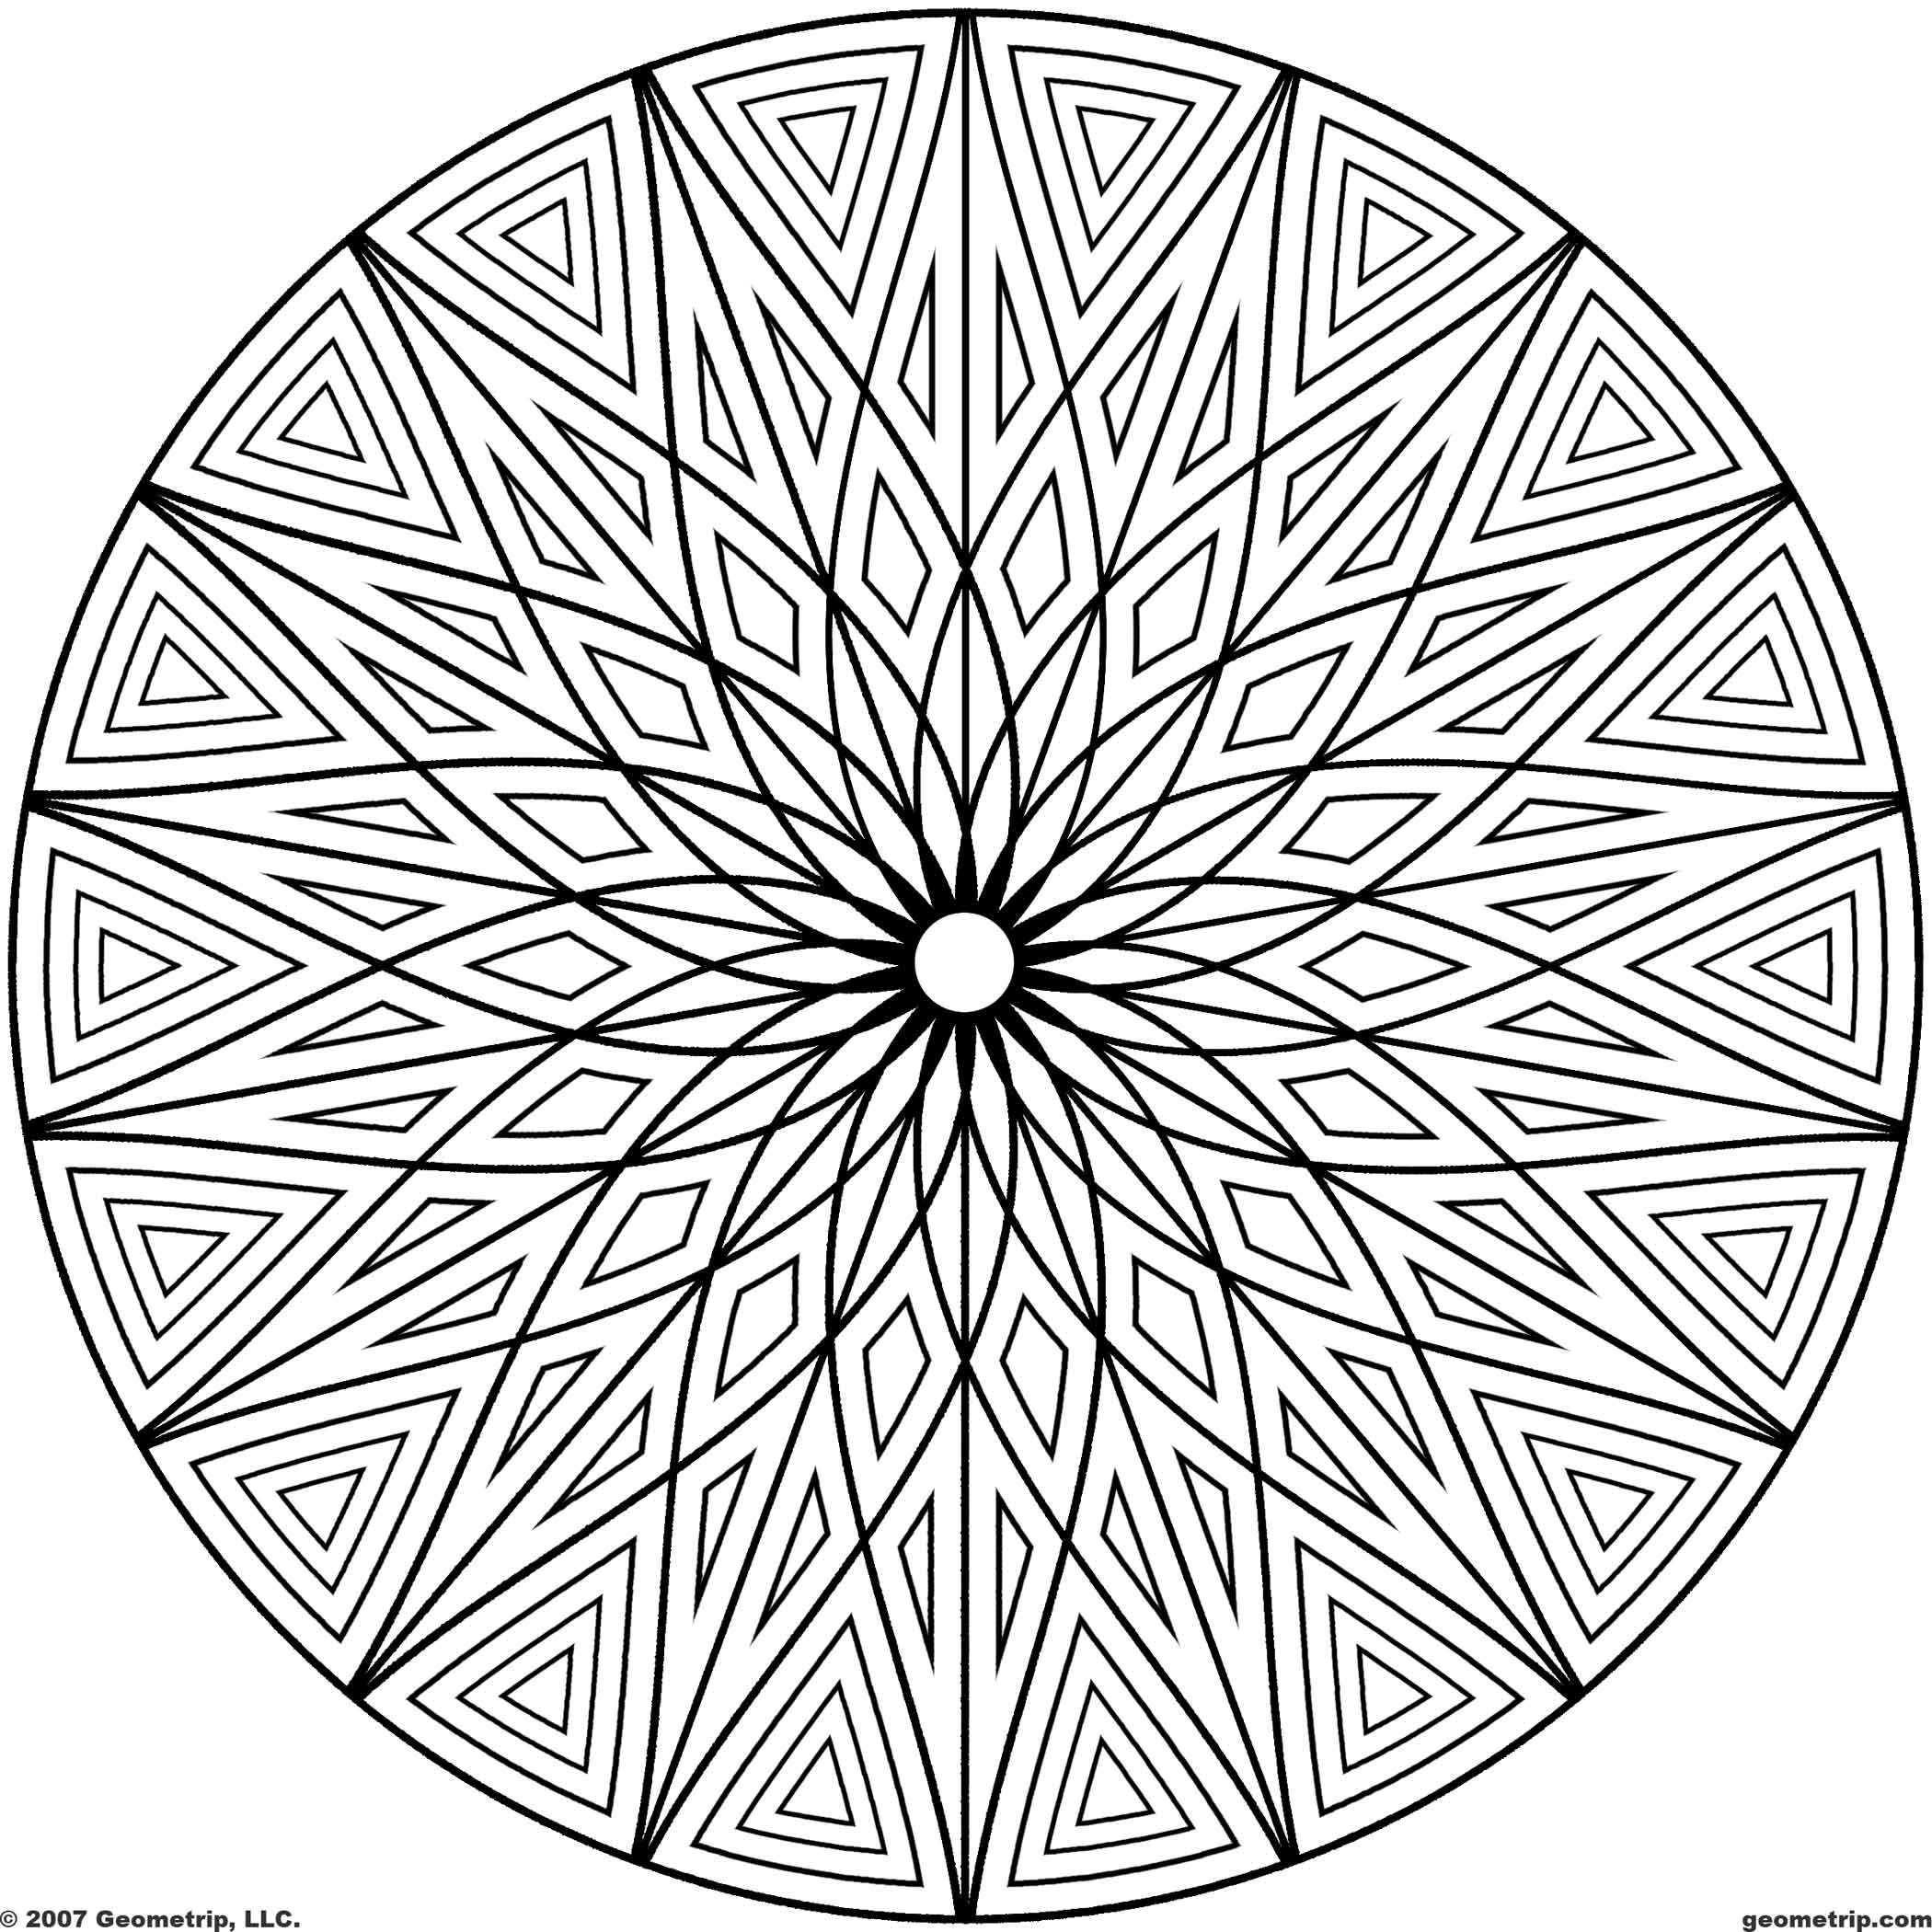 coloring pages for adults patterns calming patterns for adults who color live your life in patterns pages for coloring adults